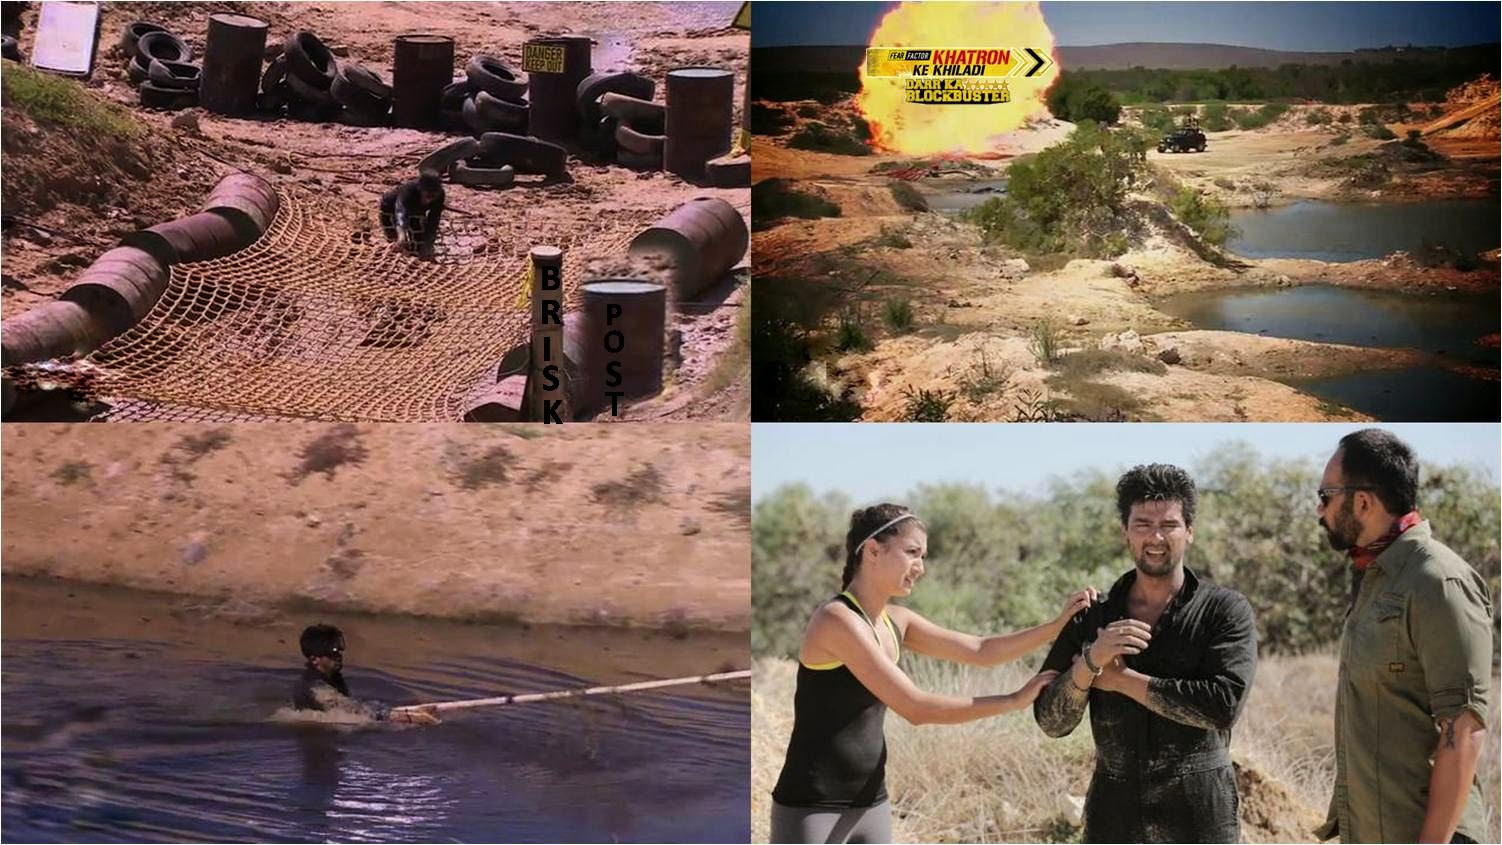 Filmy action packed stunt with fire blasts of bombs and dhamake for Khatron Ke Khiladi contestants Kushal and Gauhar; injured Kushal in still